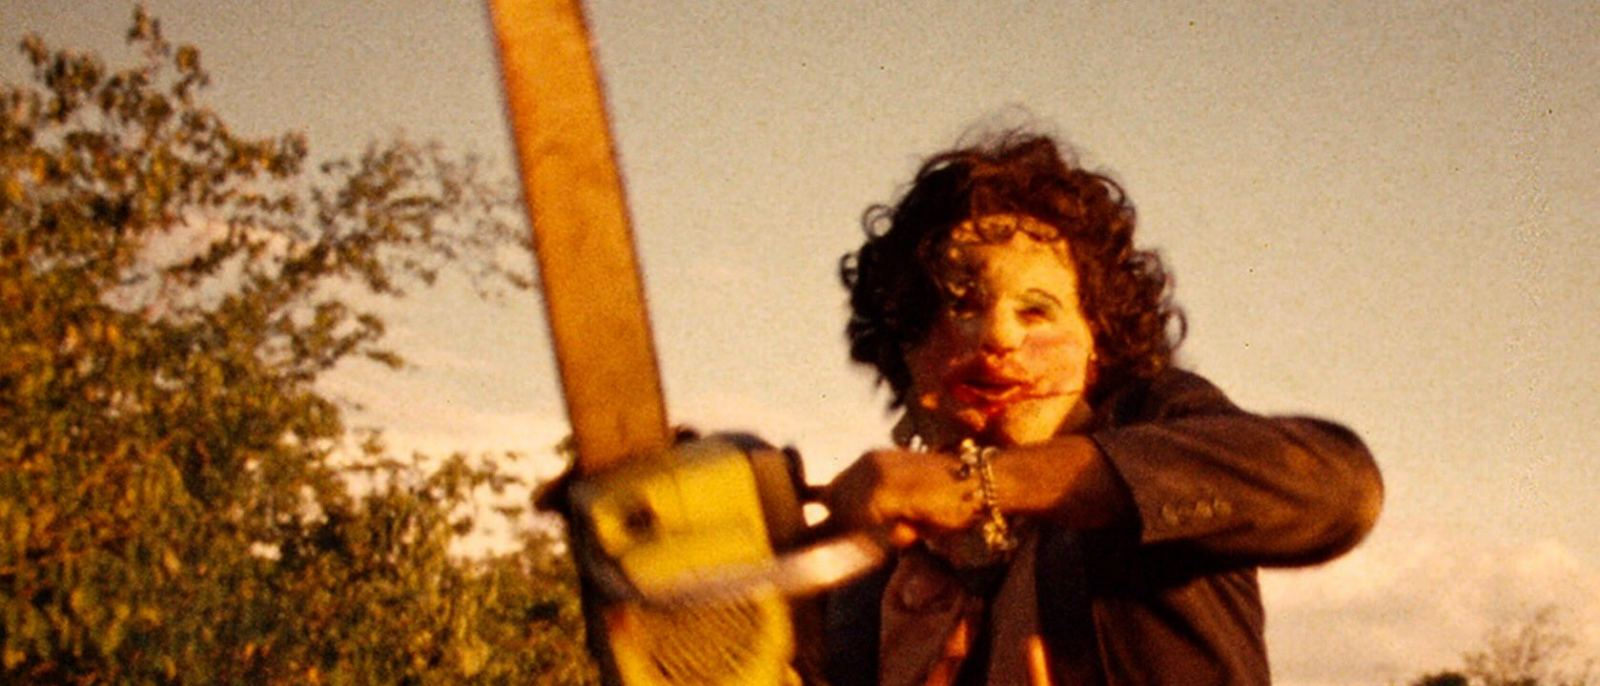 """Leatherface in """"The Texas Chainsaw Massacre"""" (1974)"""